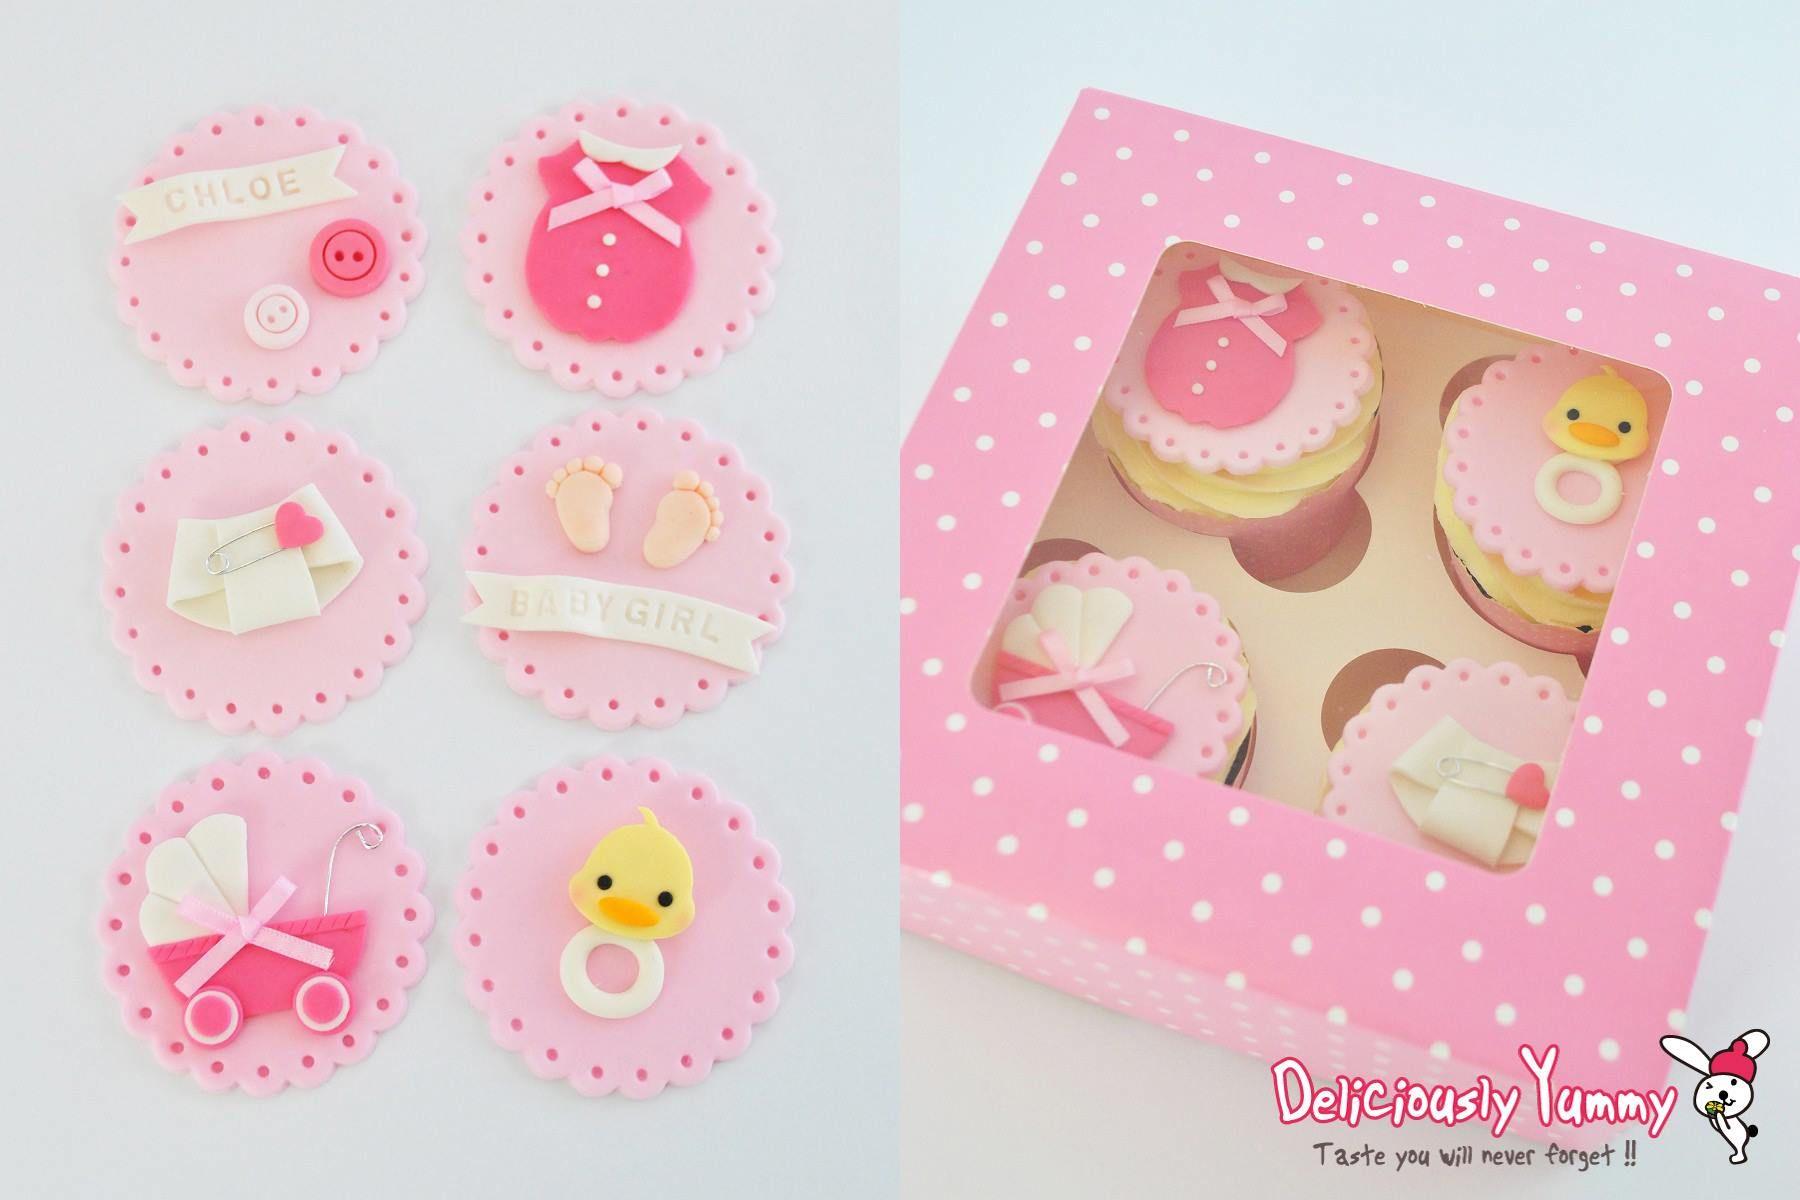 Baby Shower Cupcakes from Deliciously Yummy